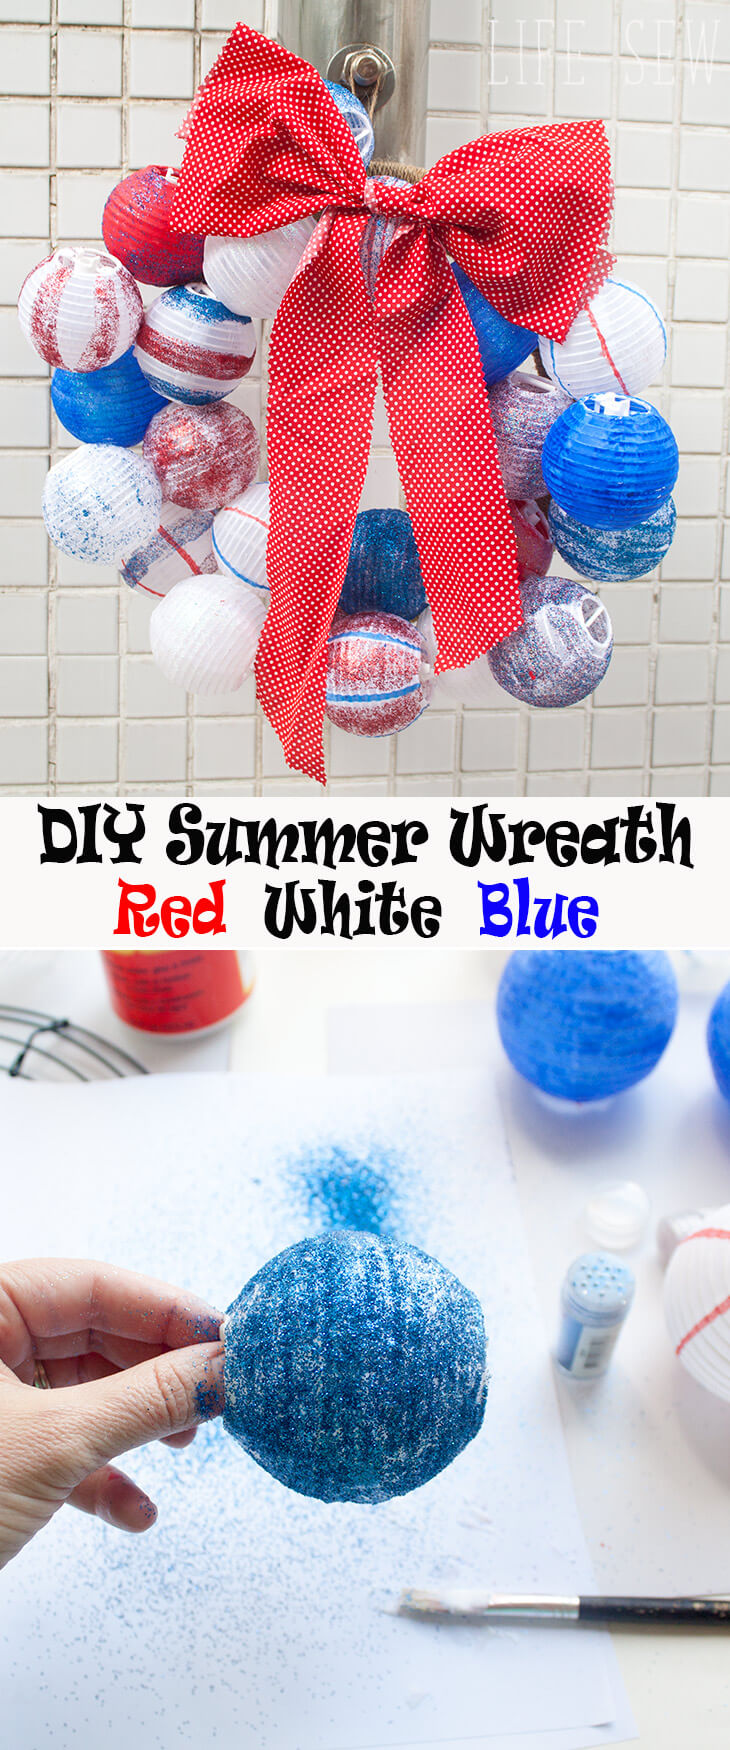 DIY summer wreath a red white and blue summer wreath by Life Sew Savory